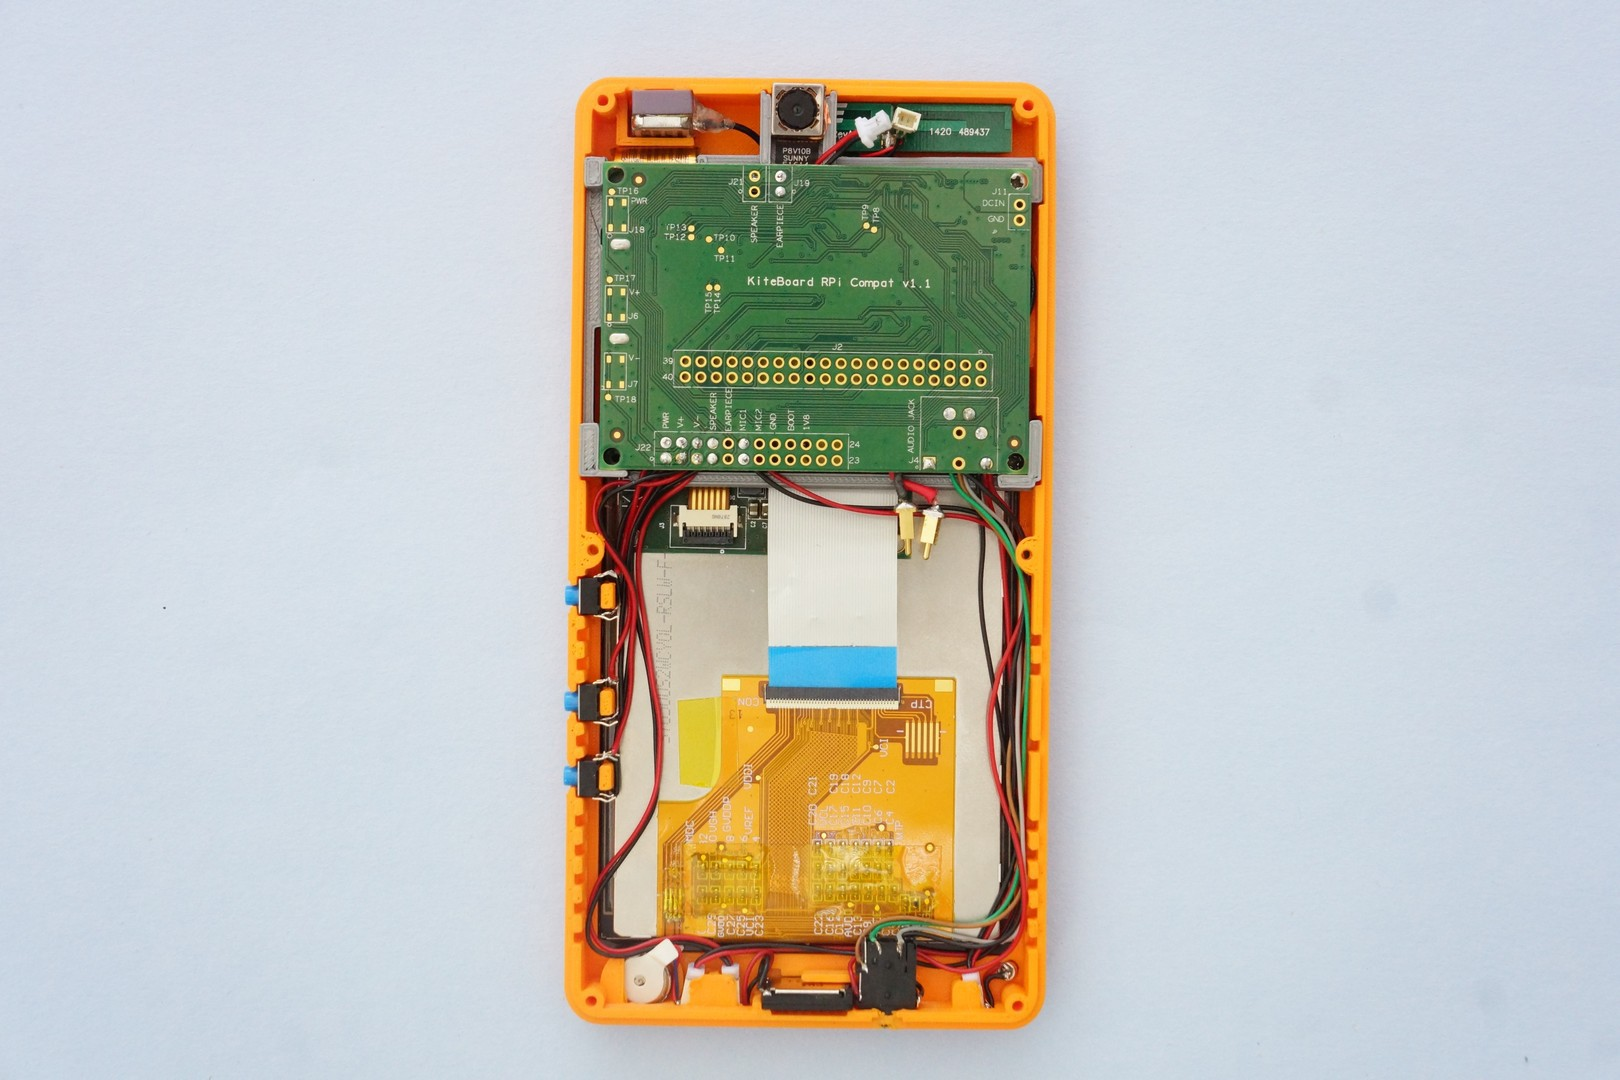 Project Kite Open Hardware Android Smartphone Handy Multimeter From College And Tested All Wire Combination Finally Insert The Wired Audio Socket In Its Designated Slot After Routing Wires Closer To Case We End Up With An Arrangement Similar